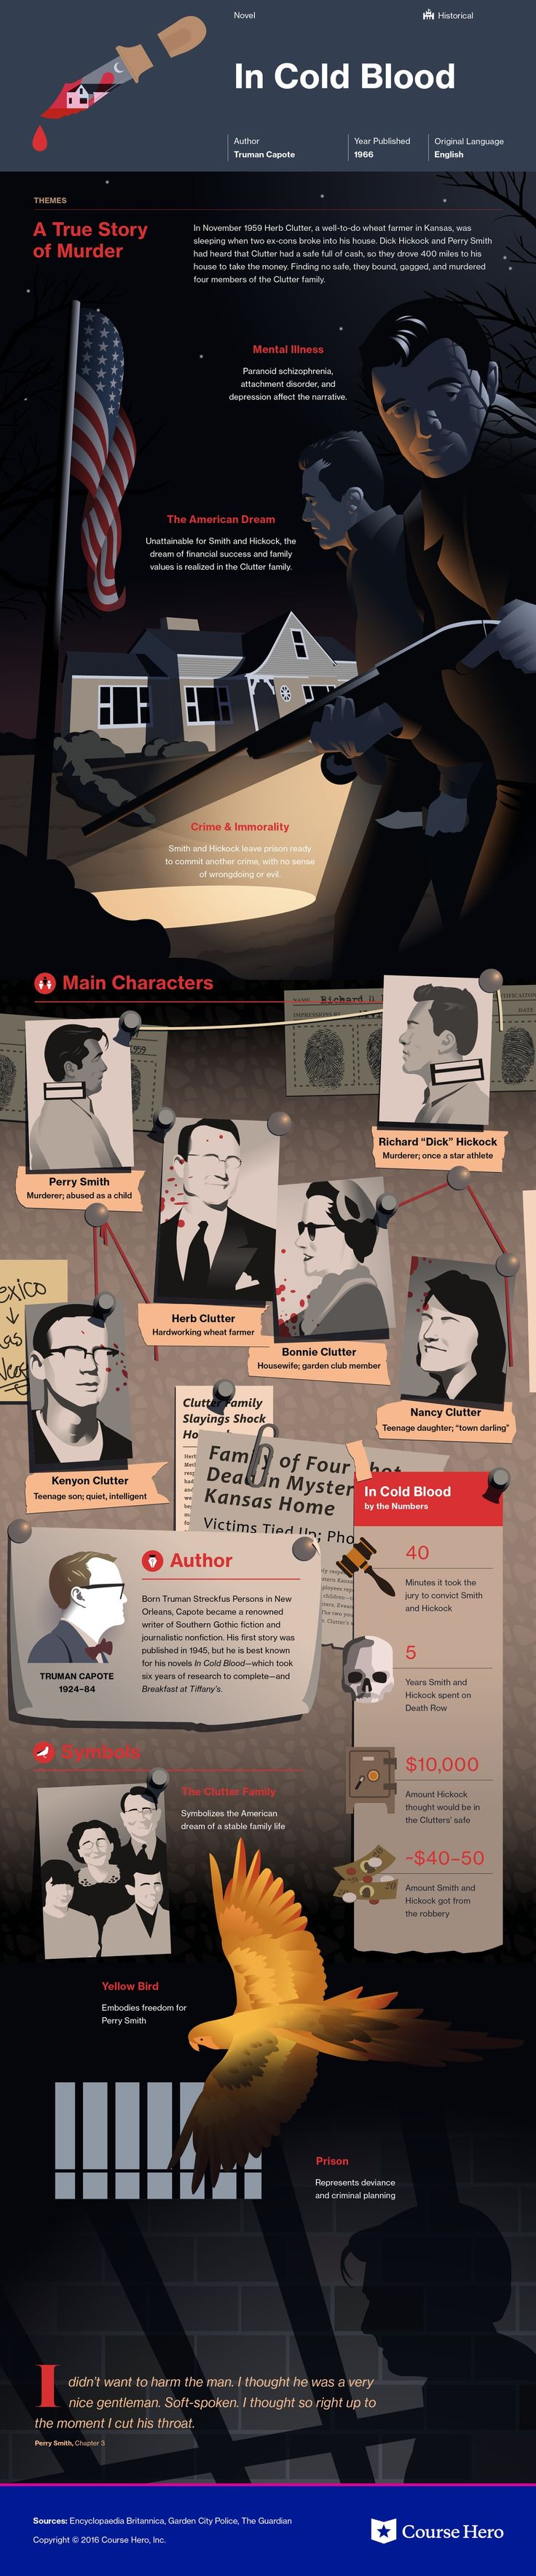 ideas about in cold blood book truman capote truman capote s in cold blood infographic to help you understand everything about the book visually learn all about the characters themes